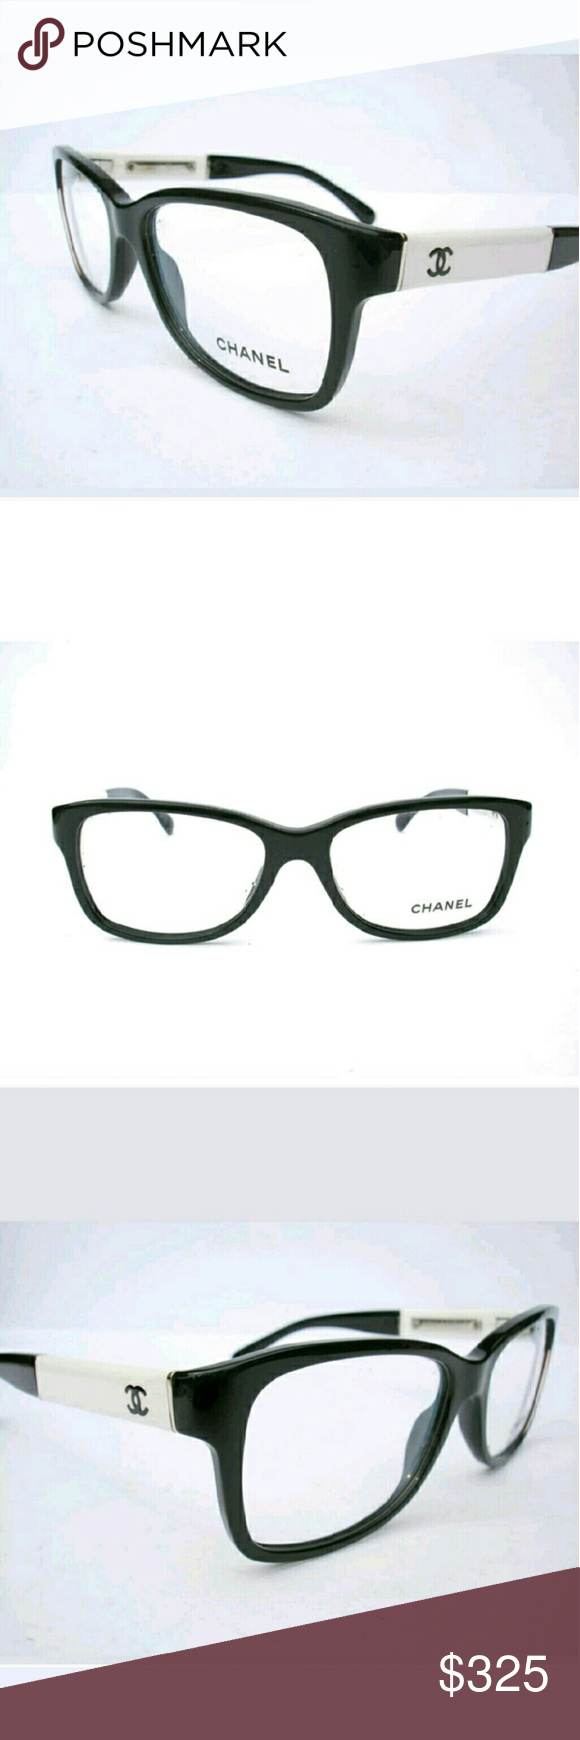 df14eccd0262 Chanel Eyeglasses Chanel Eyeglasses Authentic and new 54mm Includes  original case only Chanel Accessories Glasses